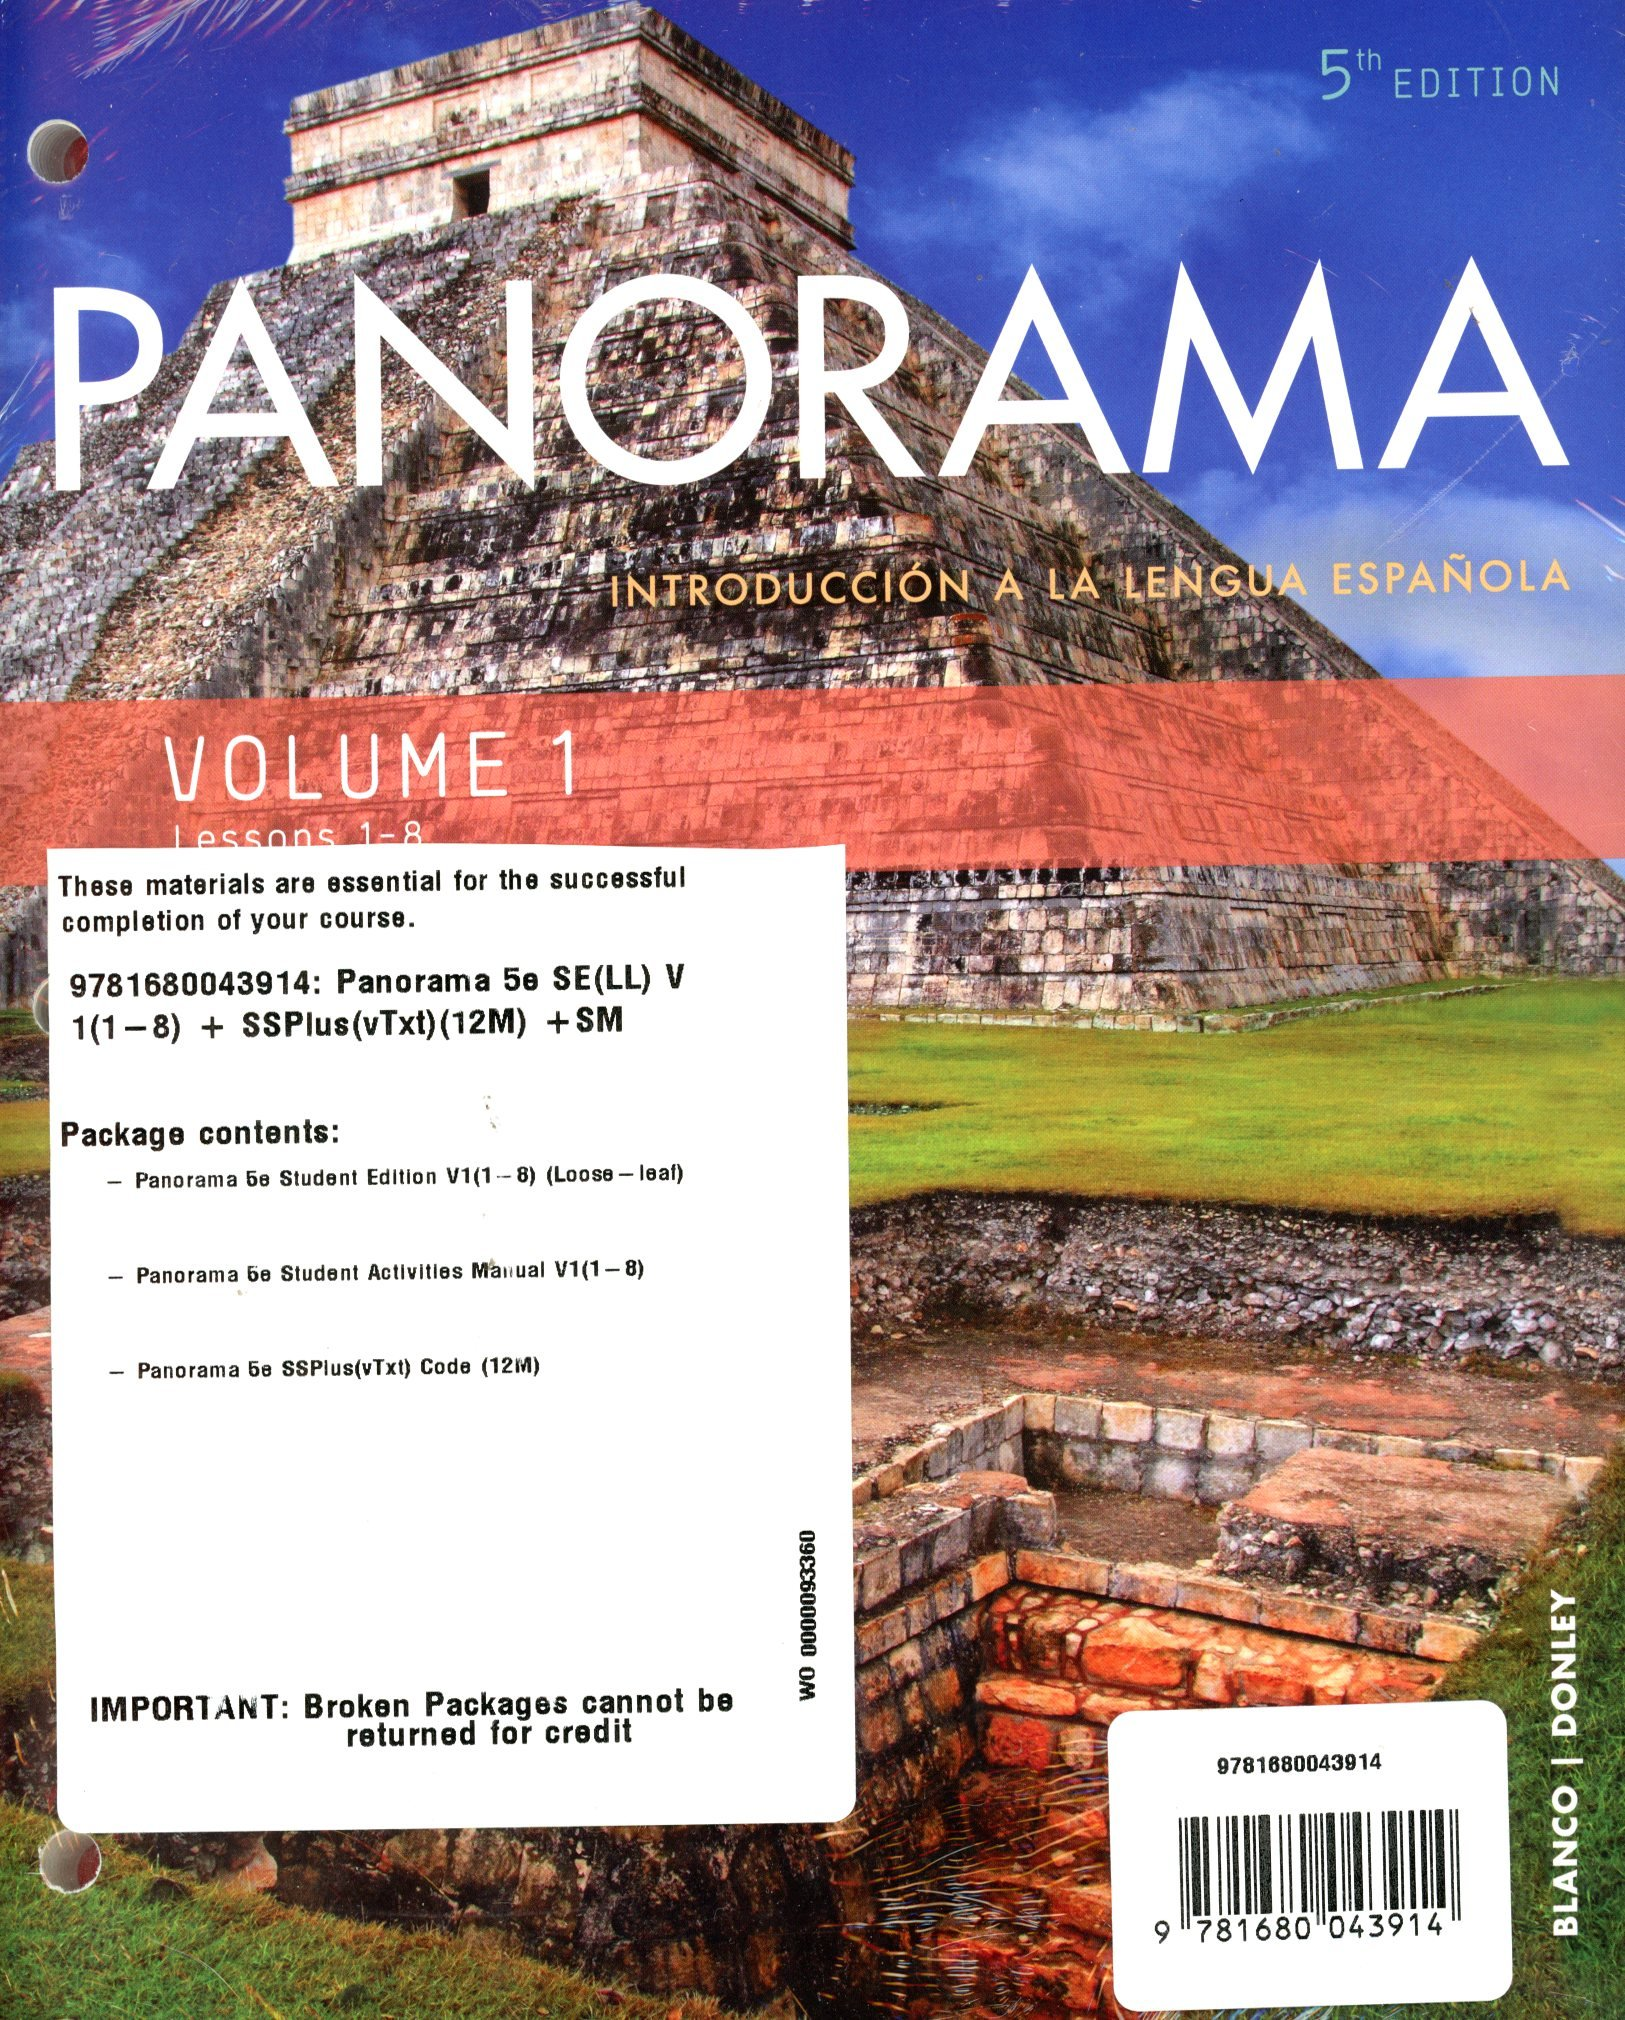 Read Online Panorama 5th Ed Looseleaf Vol 1 (Chp 1-8) w/ SSPlus(vTxt)(12M) Code and Student Activities Manual pdf